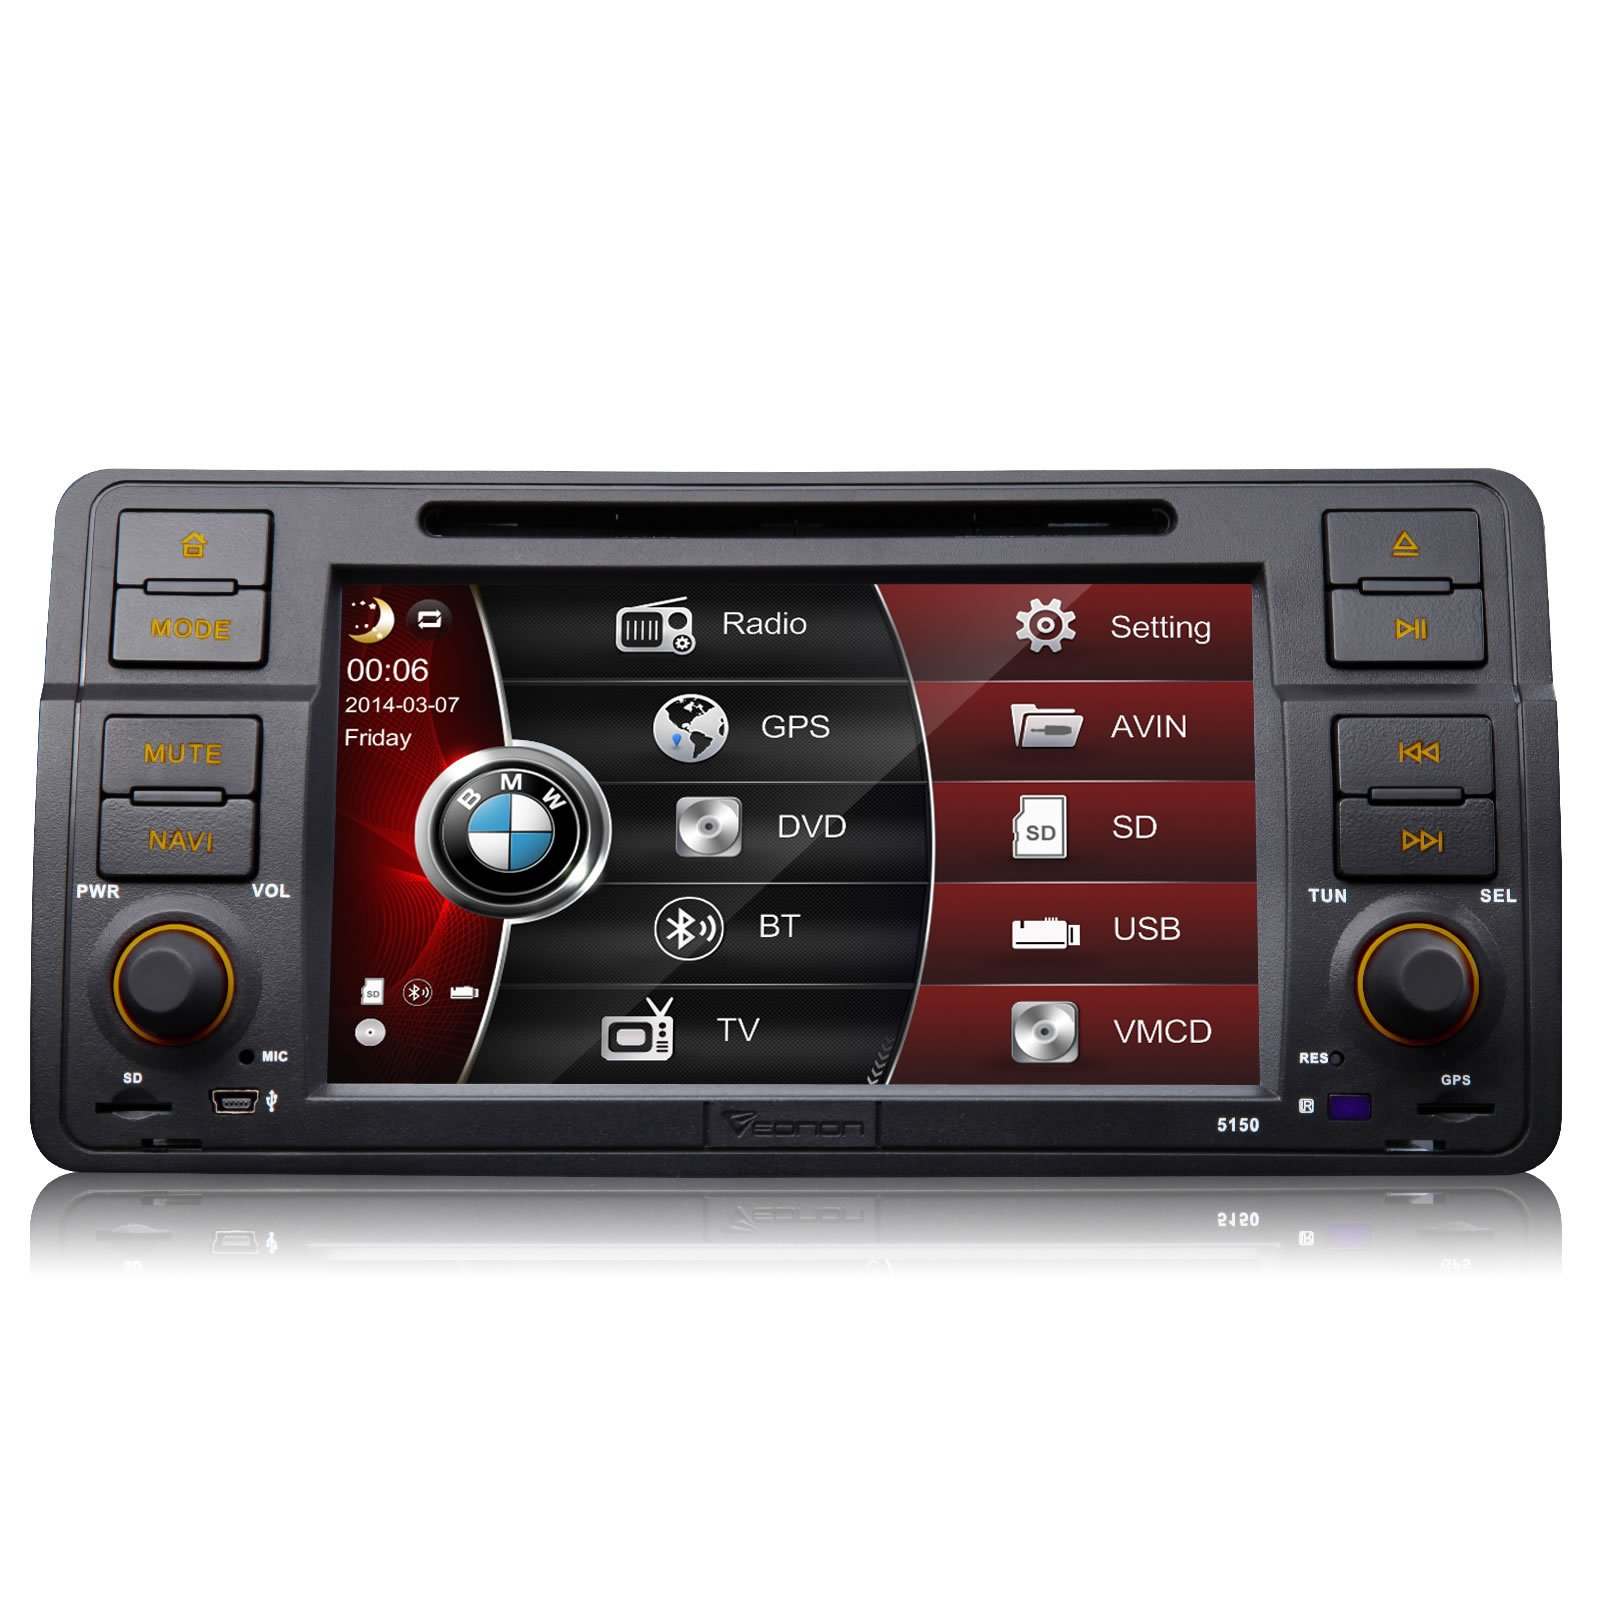 """Eonon D5150zu 1din Special for BMW 3 Series E46 M3 1998-2005 7"""" Car DVD Player GPS SAT NAV Radio Stereo Bluetooth Touch Screen Steering Wheel Control (Us-canada Map Included)"""